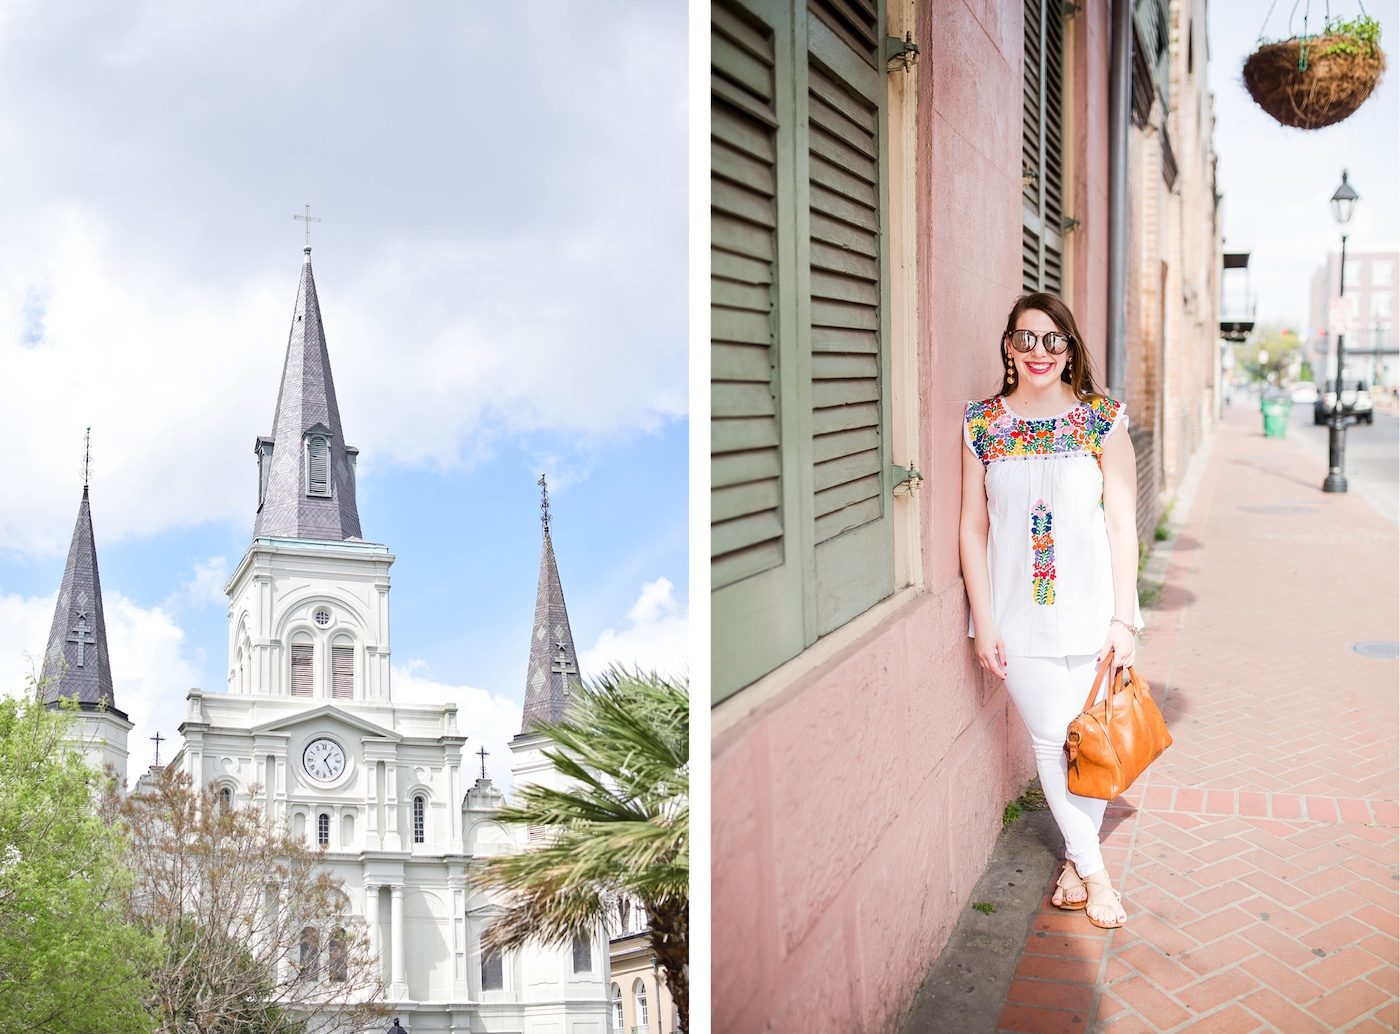 new orleans travel guide 2016